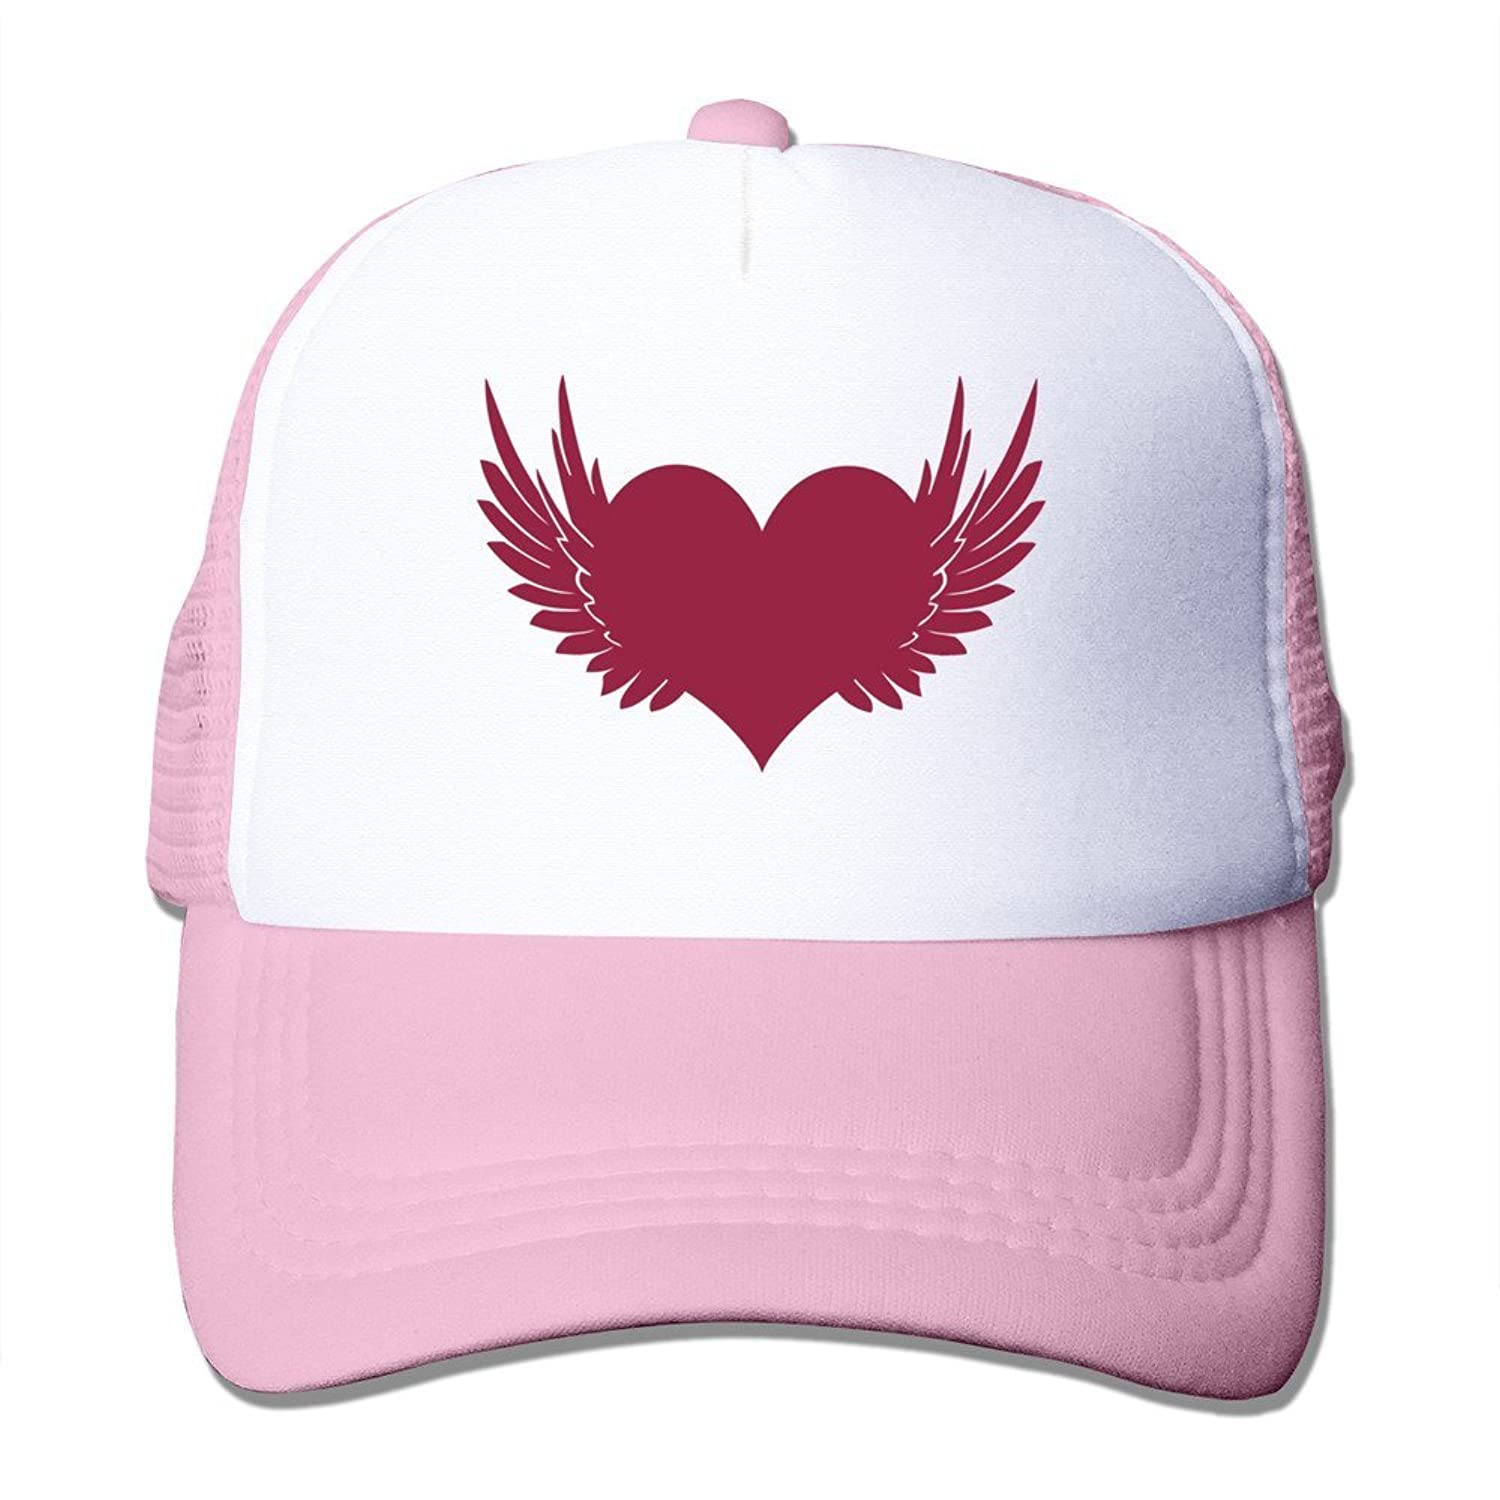 Bro-Custom Flying Heart Love Graphic Trucker Hat Cap One Size Fit All Black